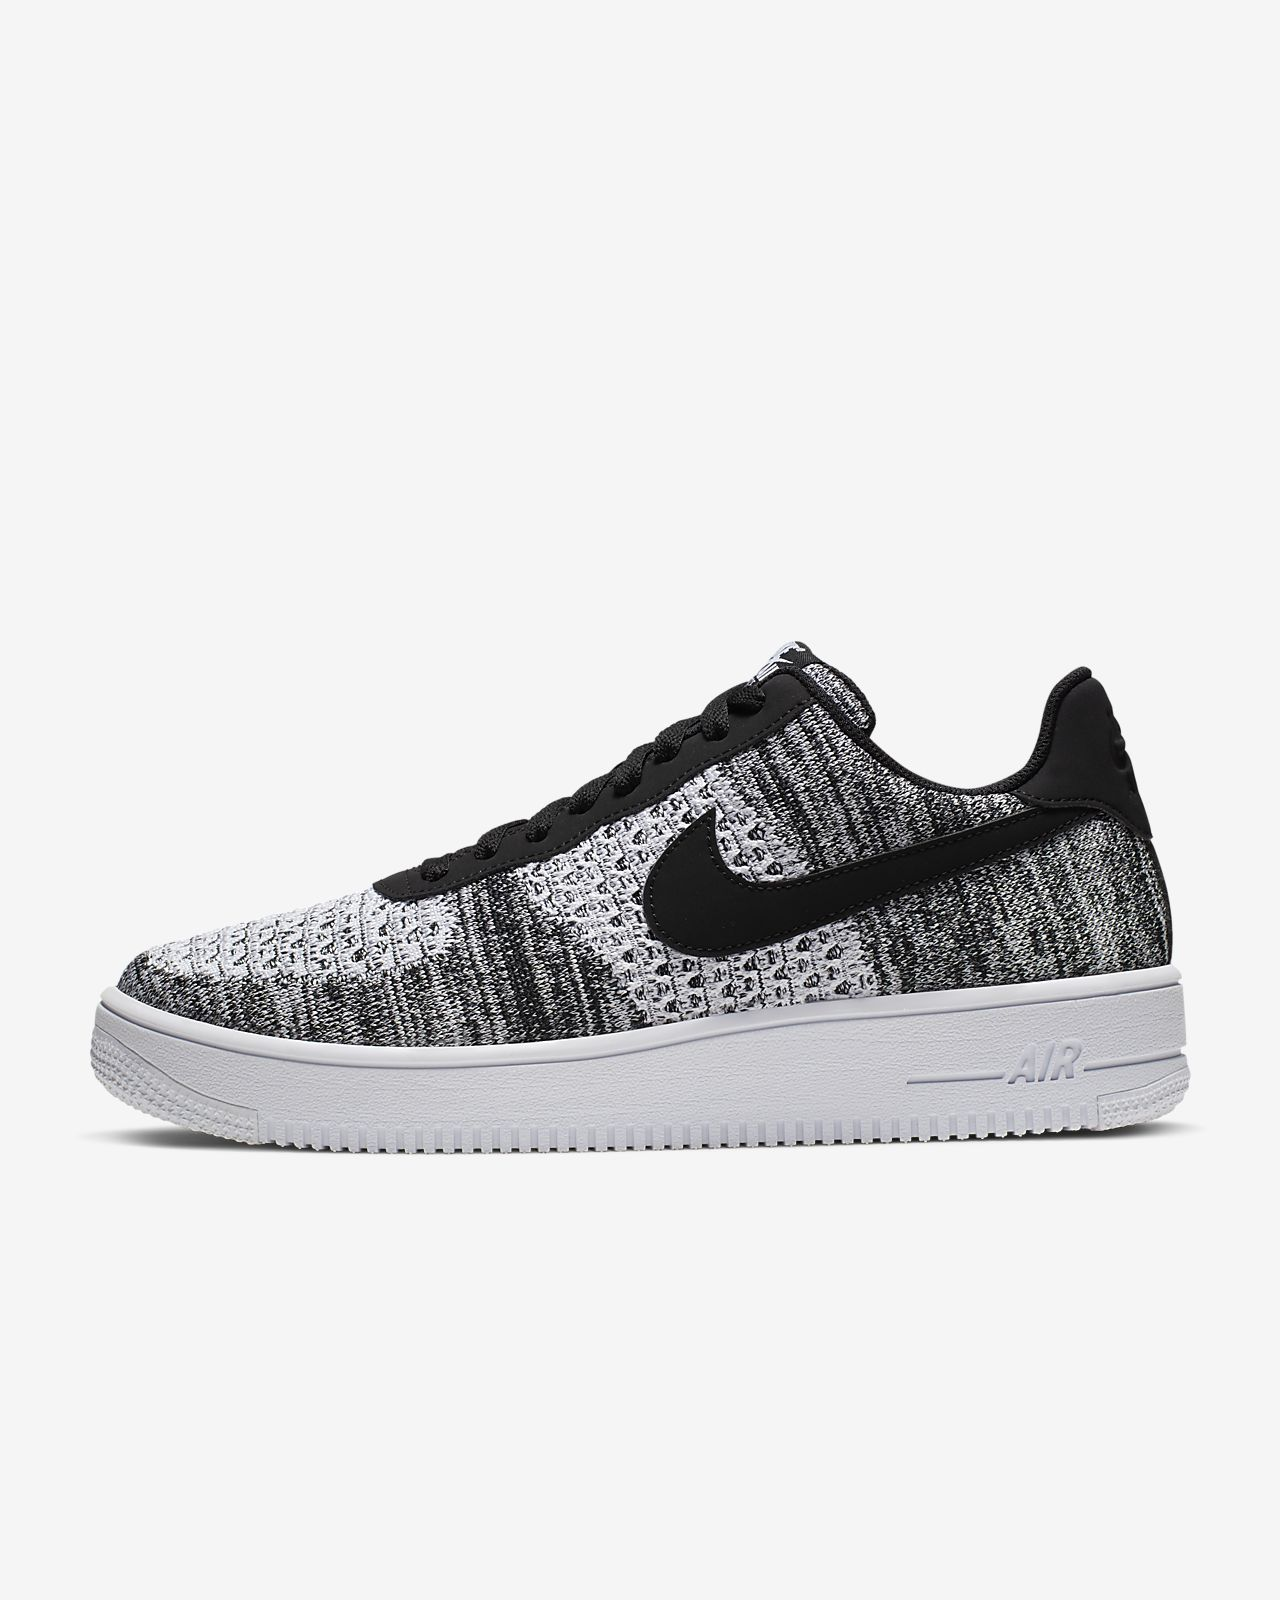 buy online 46370 ec759 Chaussure Nike Air Force 1 Flyknit 2.0 pour Homme. Nike.com MA